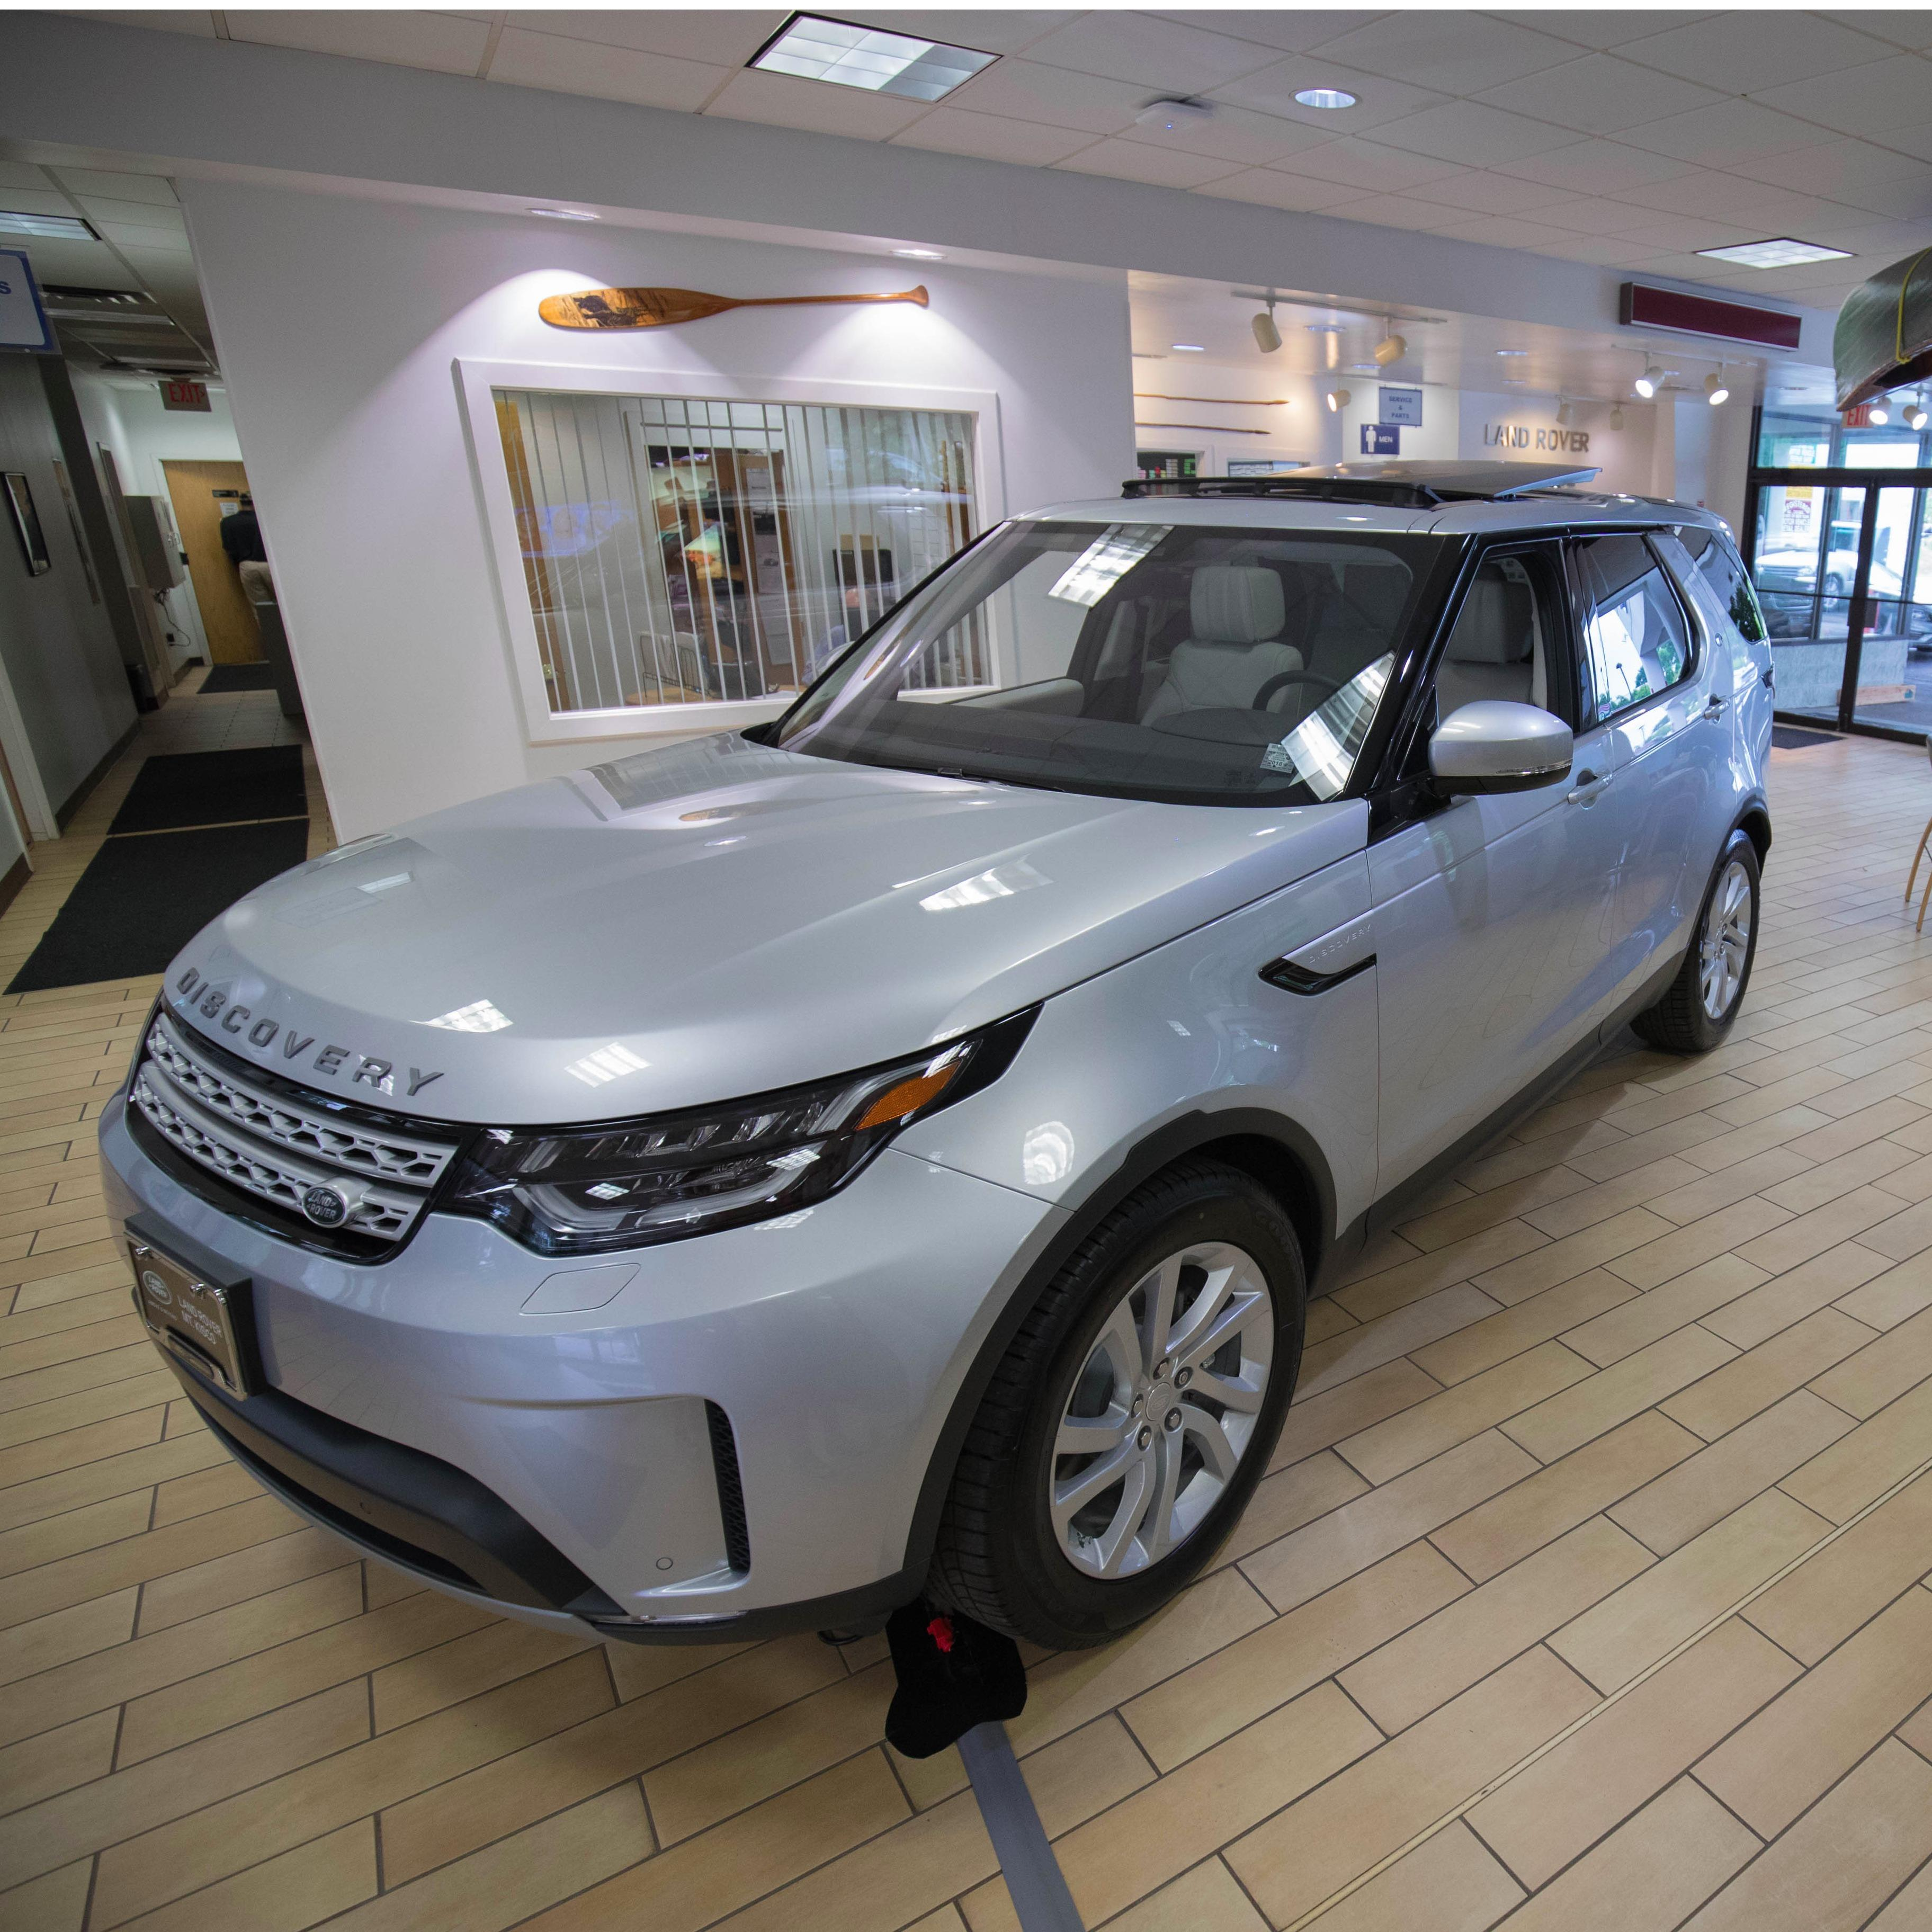 Land rover mt kisco at 299 kisco ave mount kisco ny on fave for Mt kisco honda service